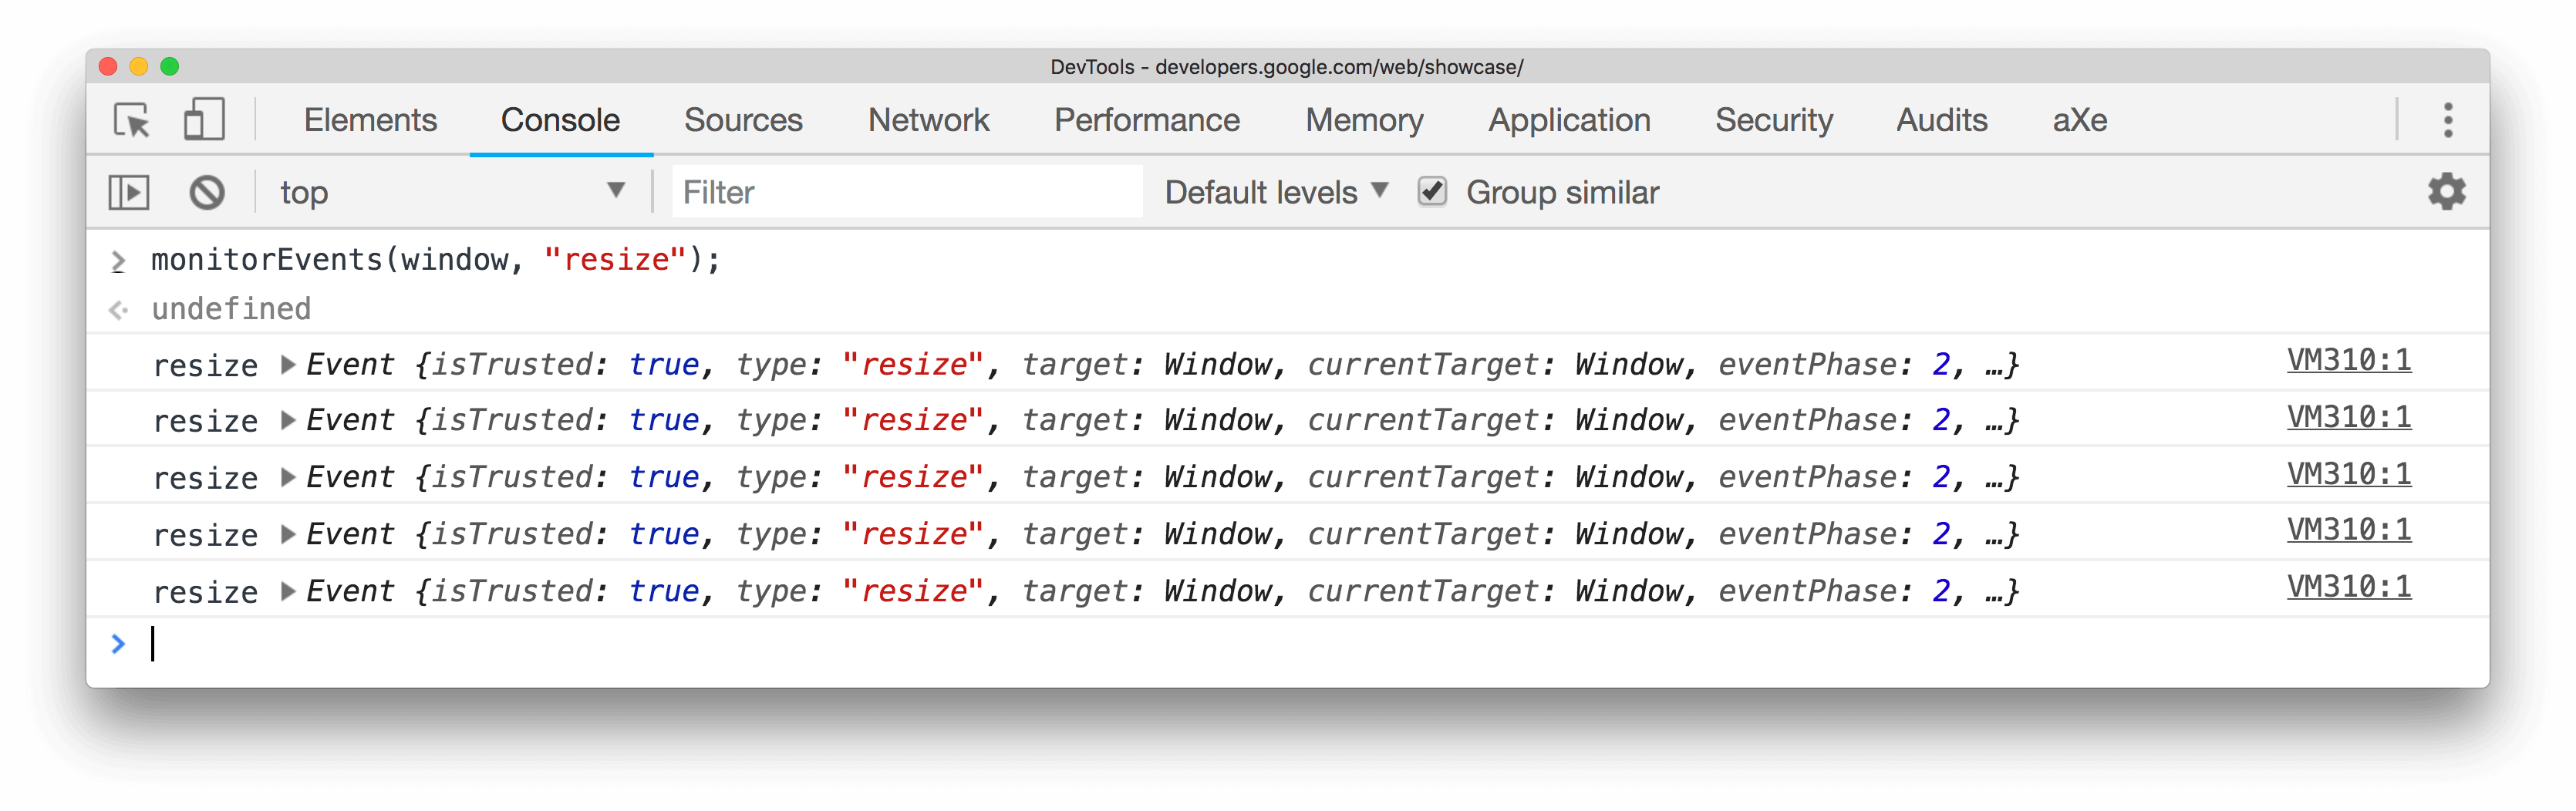 Monitoring window resize events